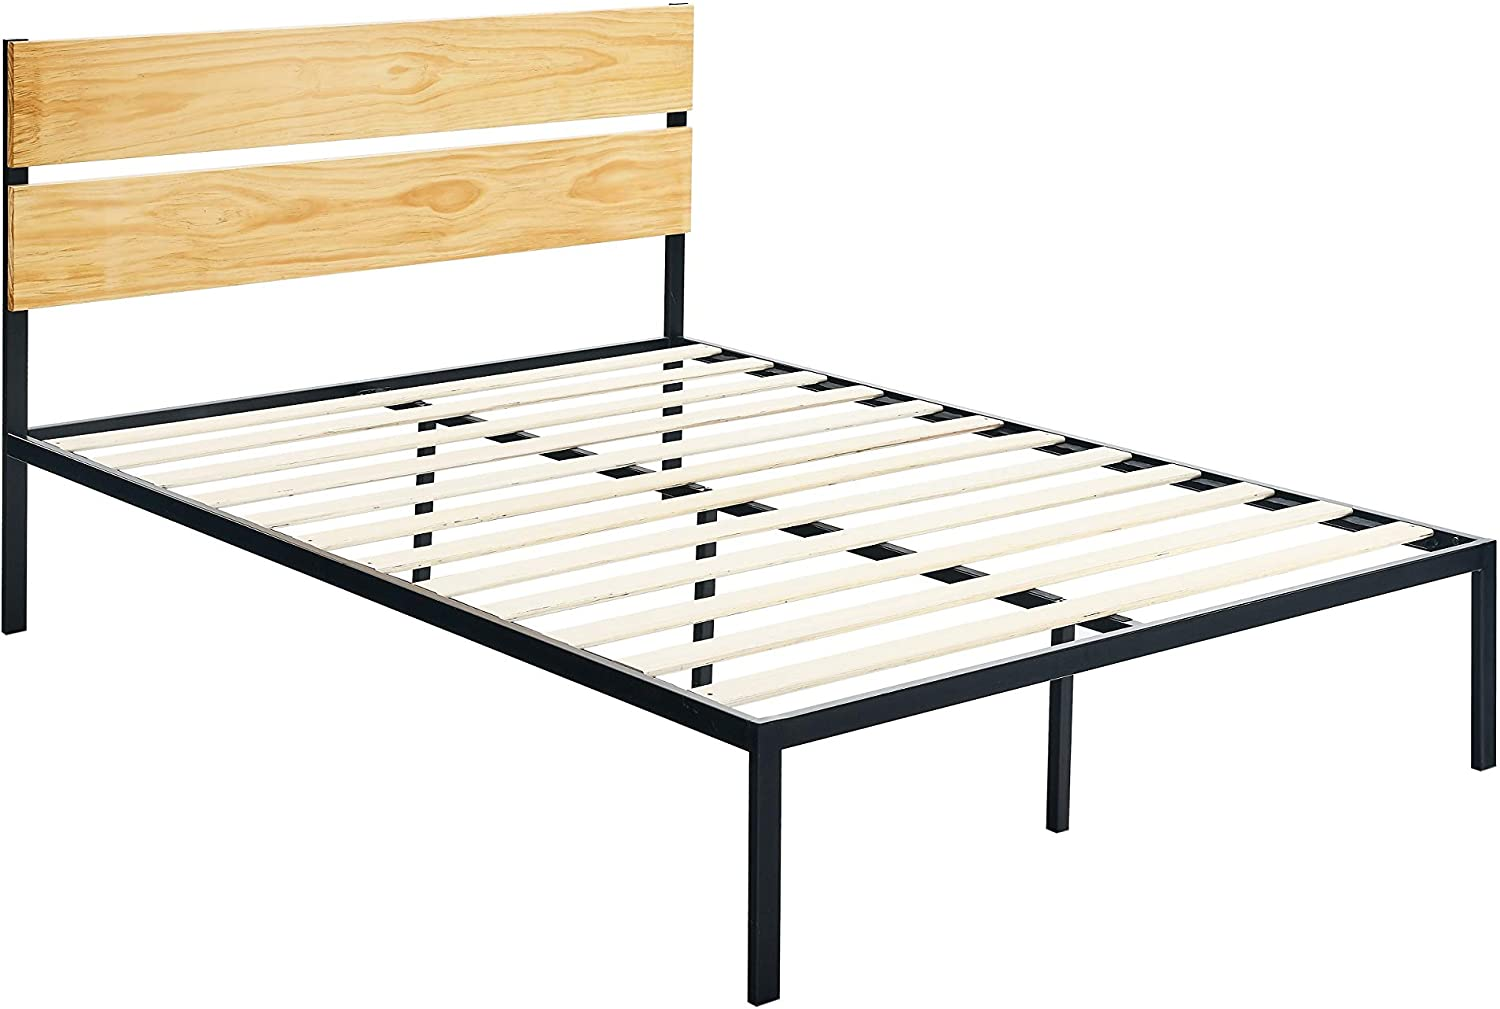 DHgateBasics Arielle Metal and Wood Platform Bed with Headboard - Wood Slat Support, King